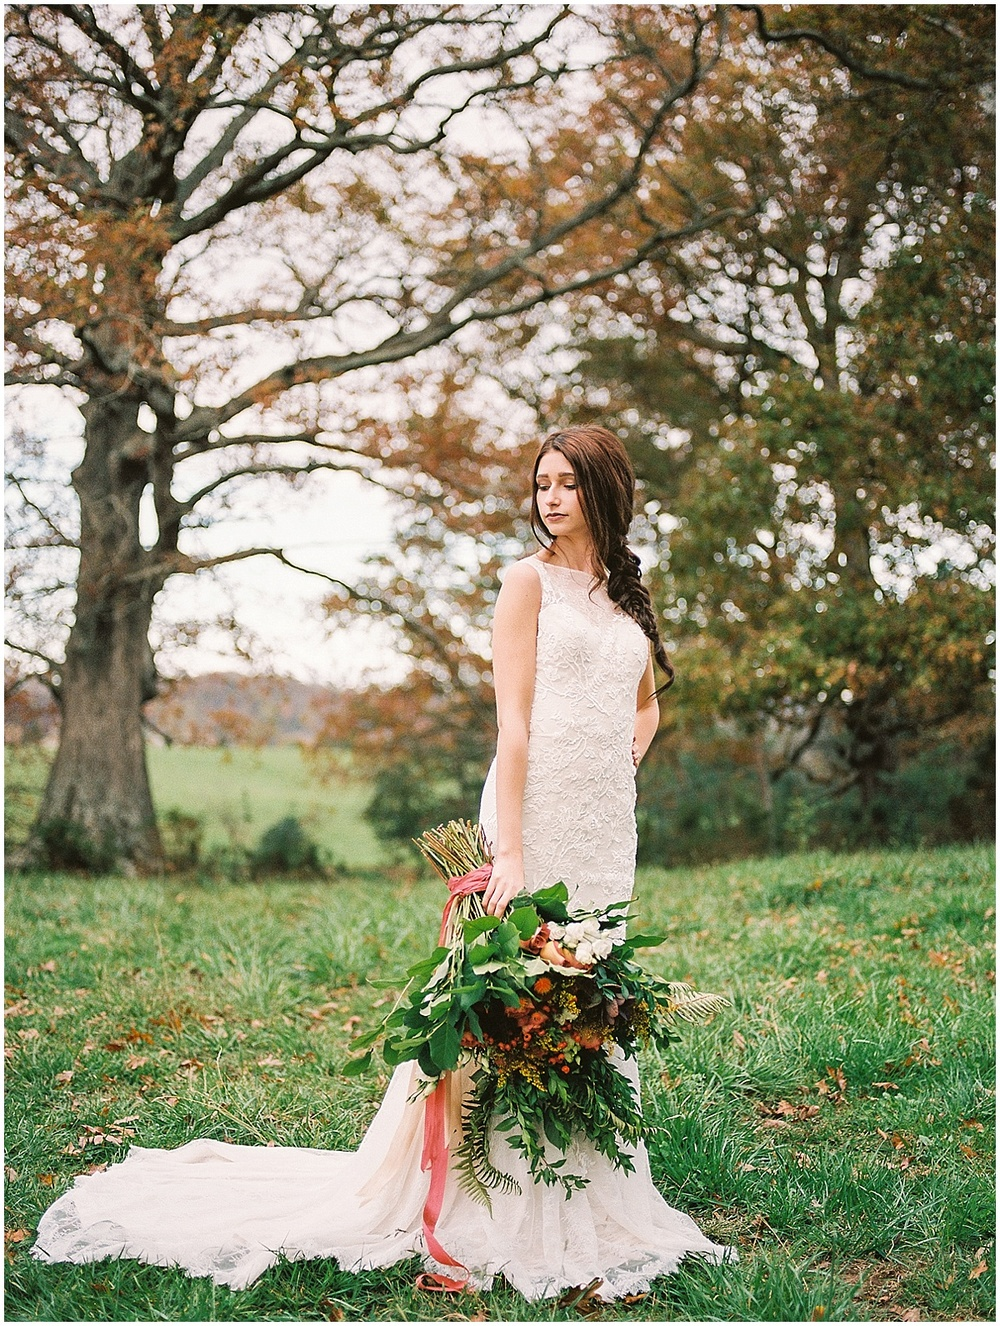 Abigail_Malone_Fall_Wedding_Knoxville_Film_Portra_400_Kodak_Mountain_Views_Abby_Elizabeth-53.jpg